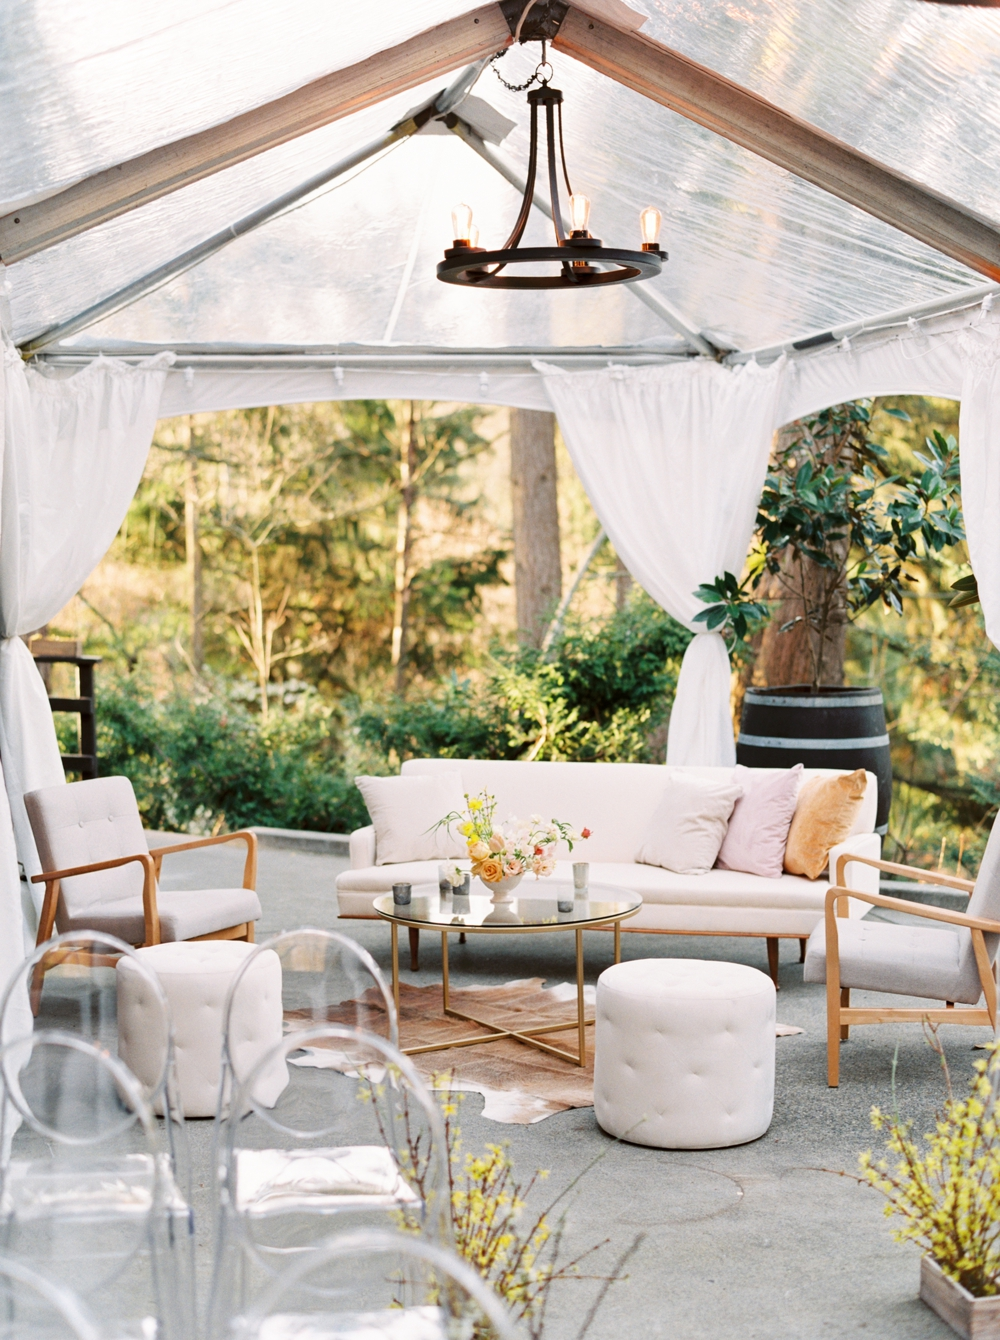 tented-seating-area